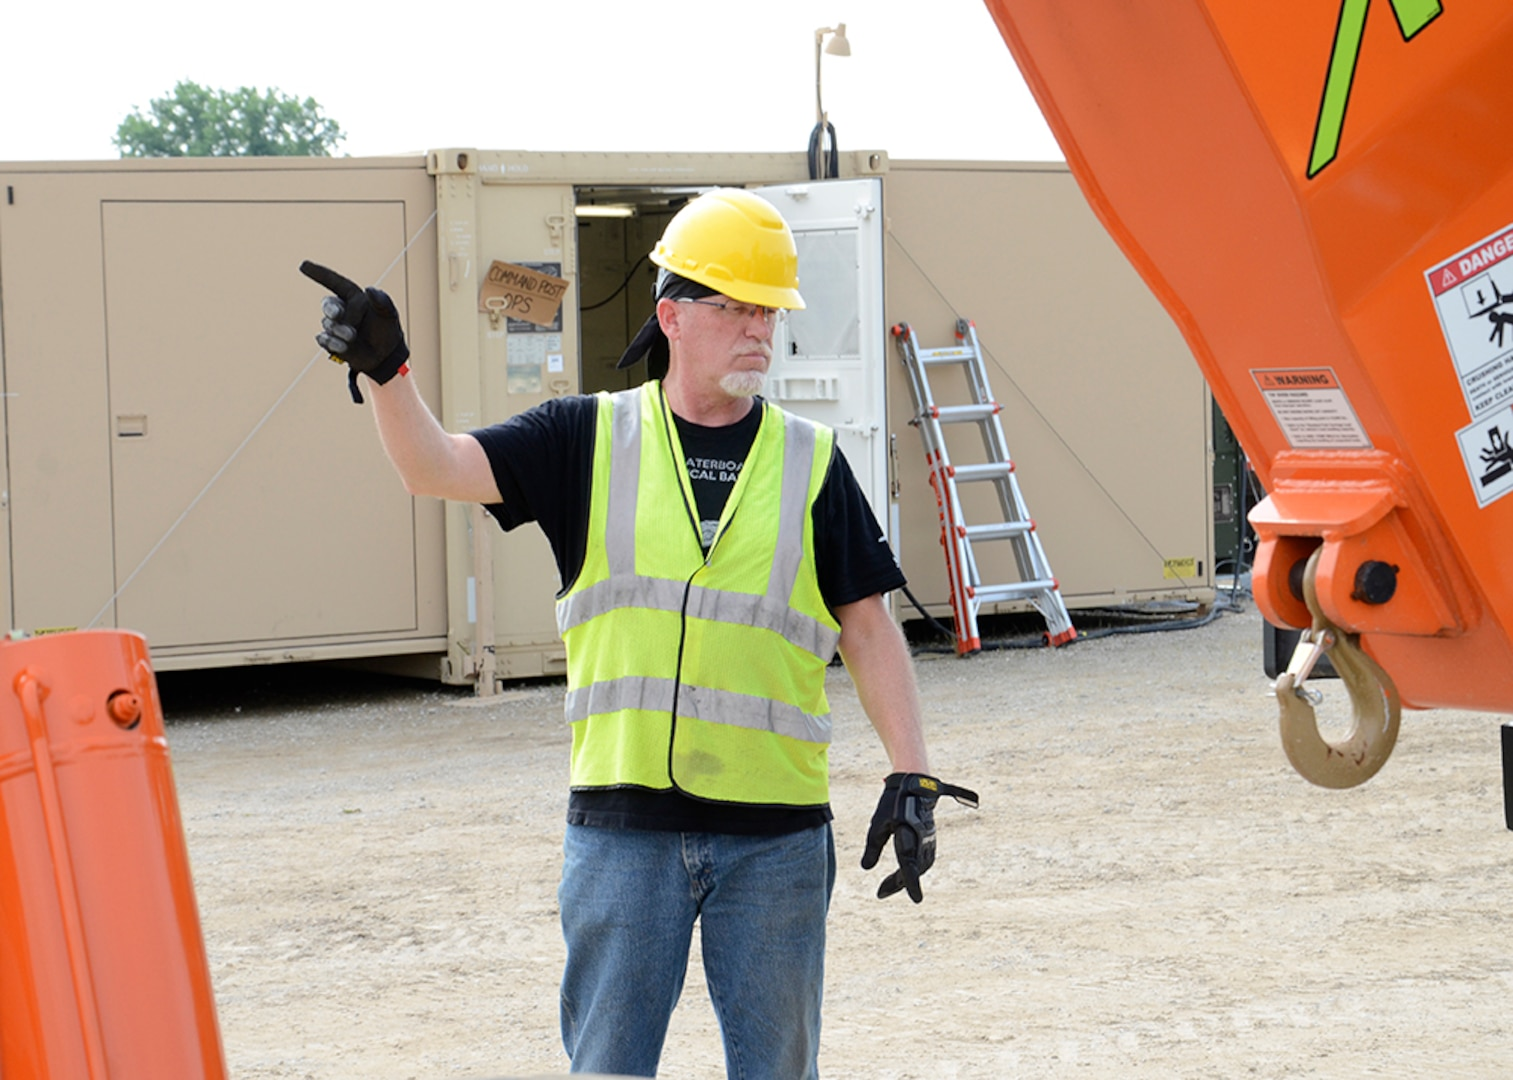 Material Examiner and Identifier Edward Jones directs materiel handling equipment during a property offload evolution at OCORT '19 in Michigan.